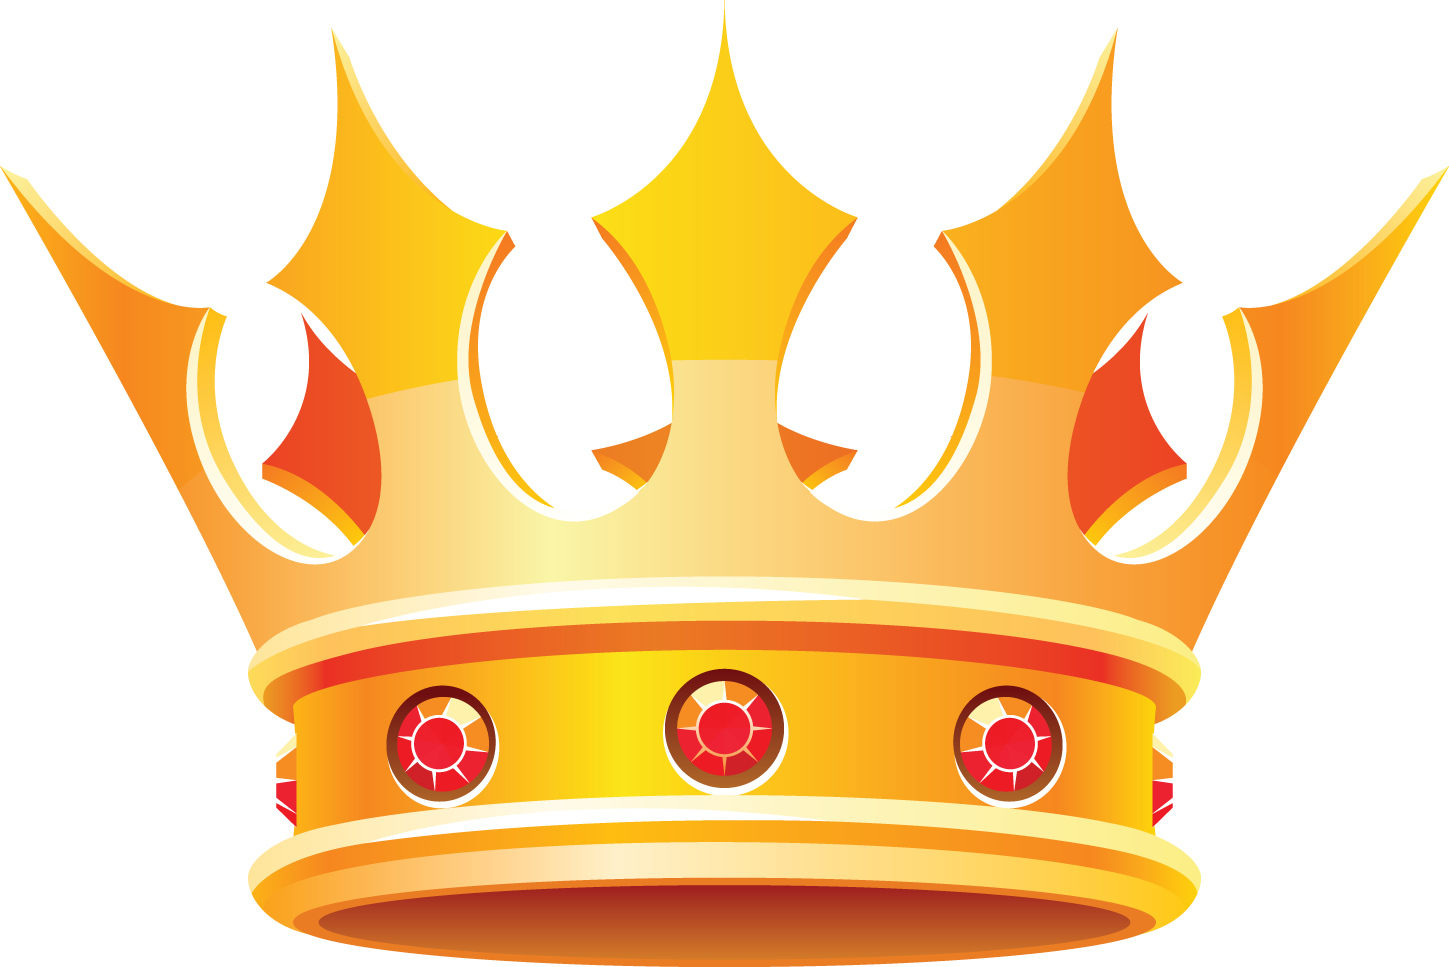 Png transparent background crown clipart graphic library stock King crown png clipart - ClipartFest graphic library stock